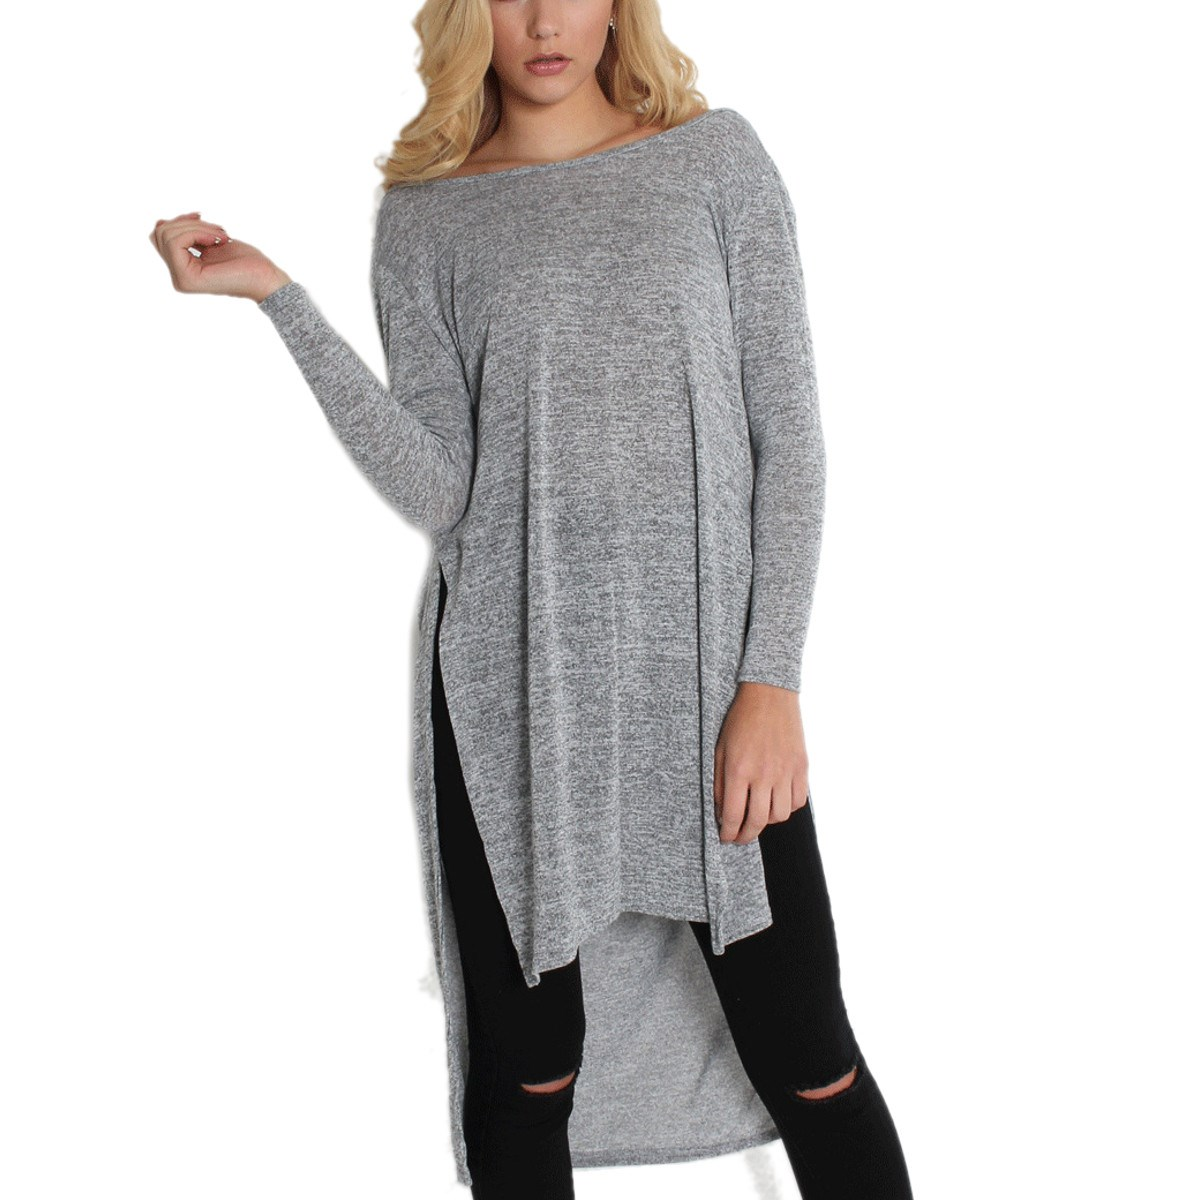 Free shipping Fall Long Sleeves Online Store. Best Long Sleeves for sale. Cheap Fall Long Sleeves with excellent quality and fast delivery.   truemfilesb5q.gq